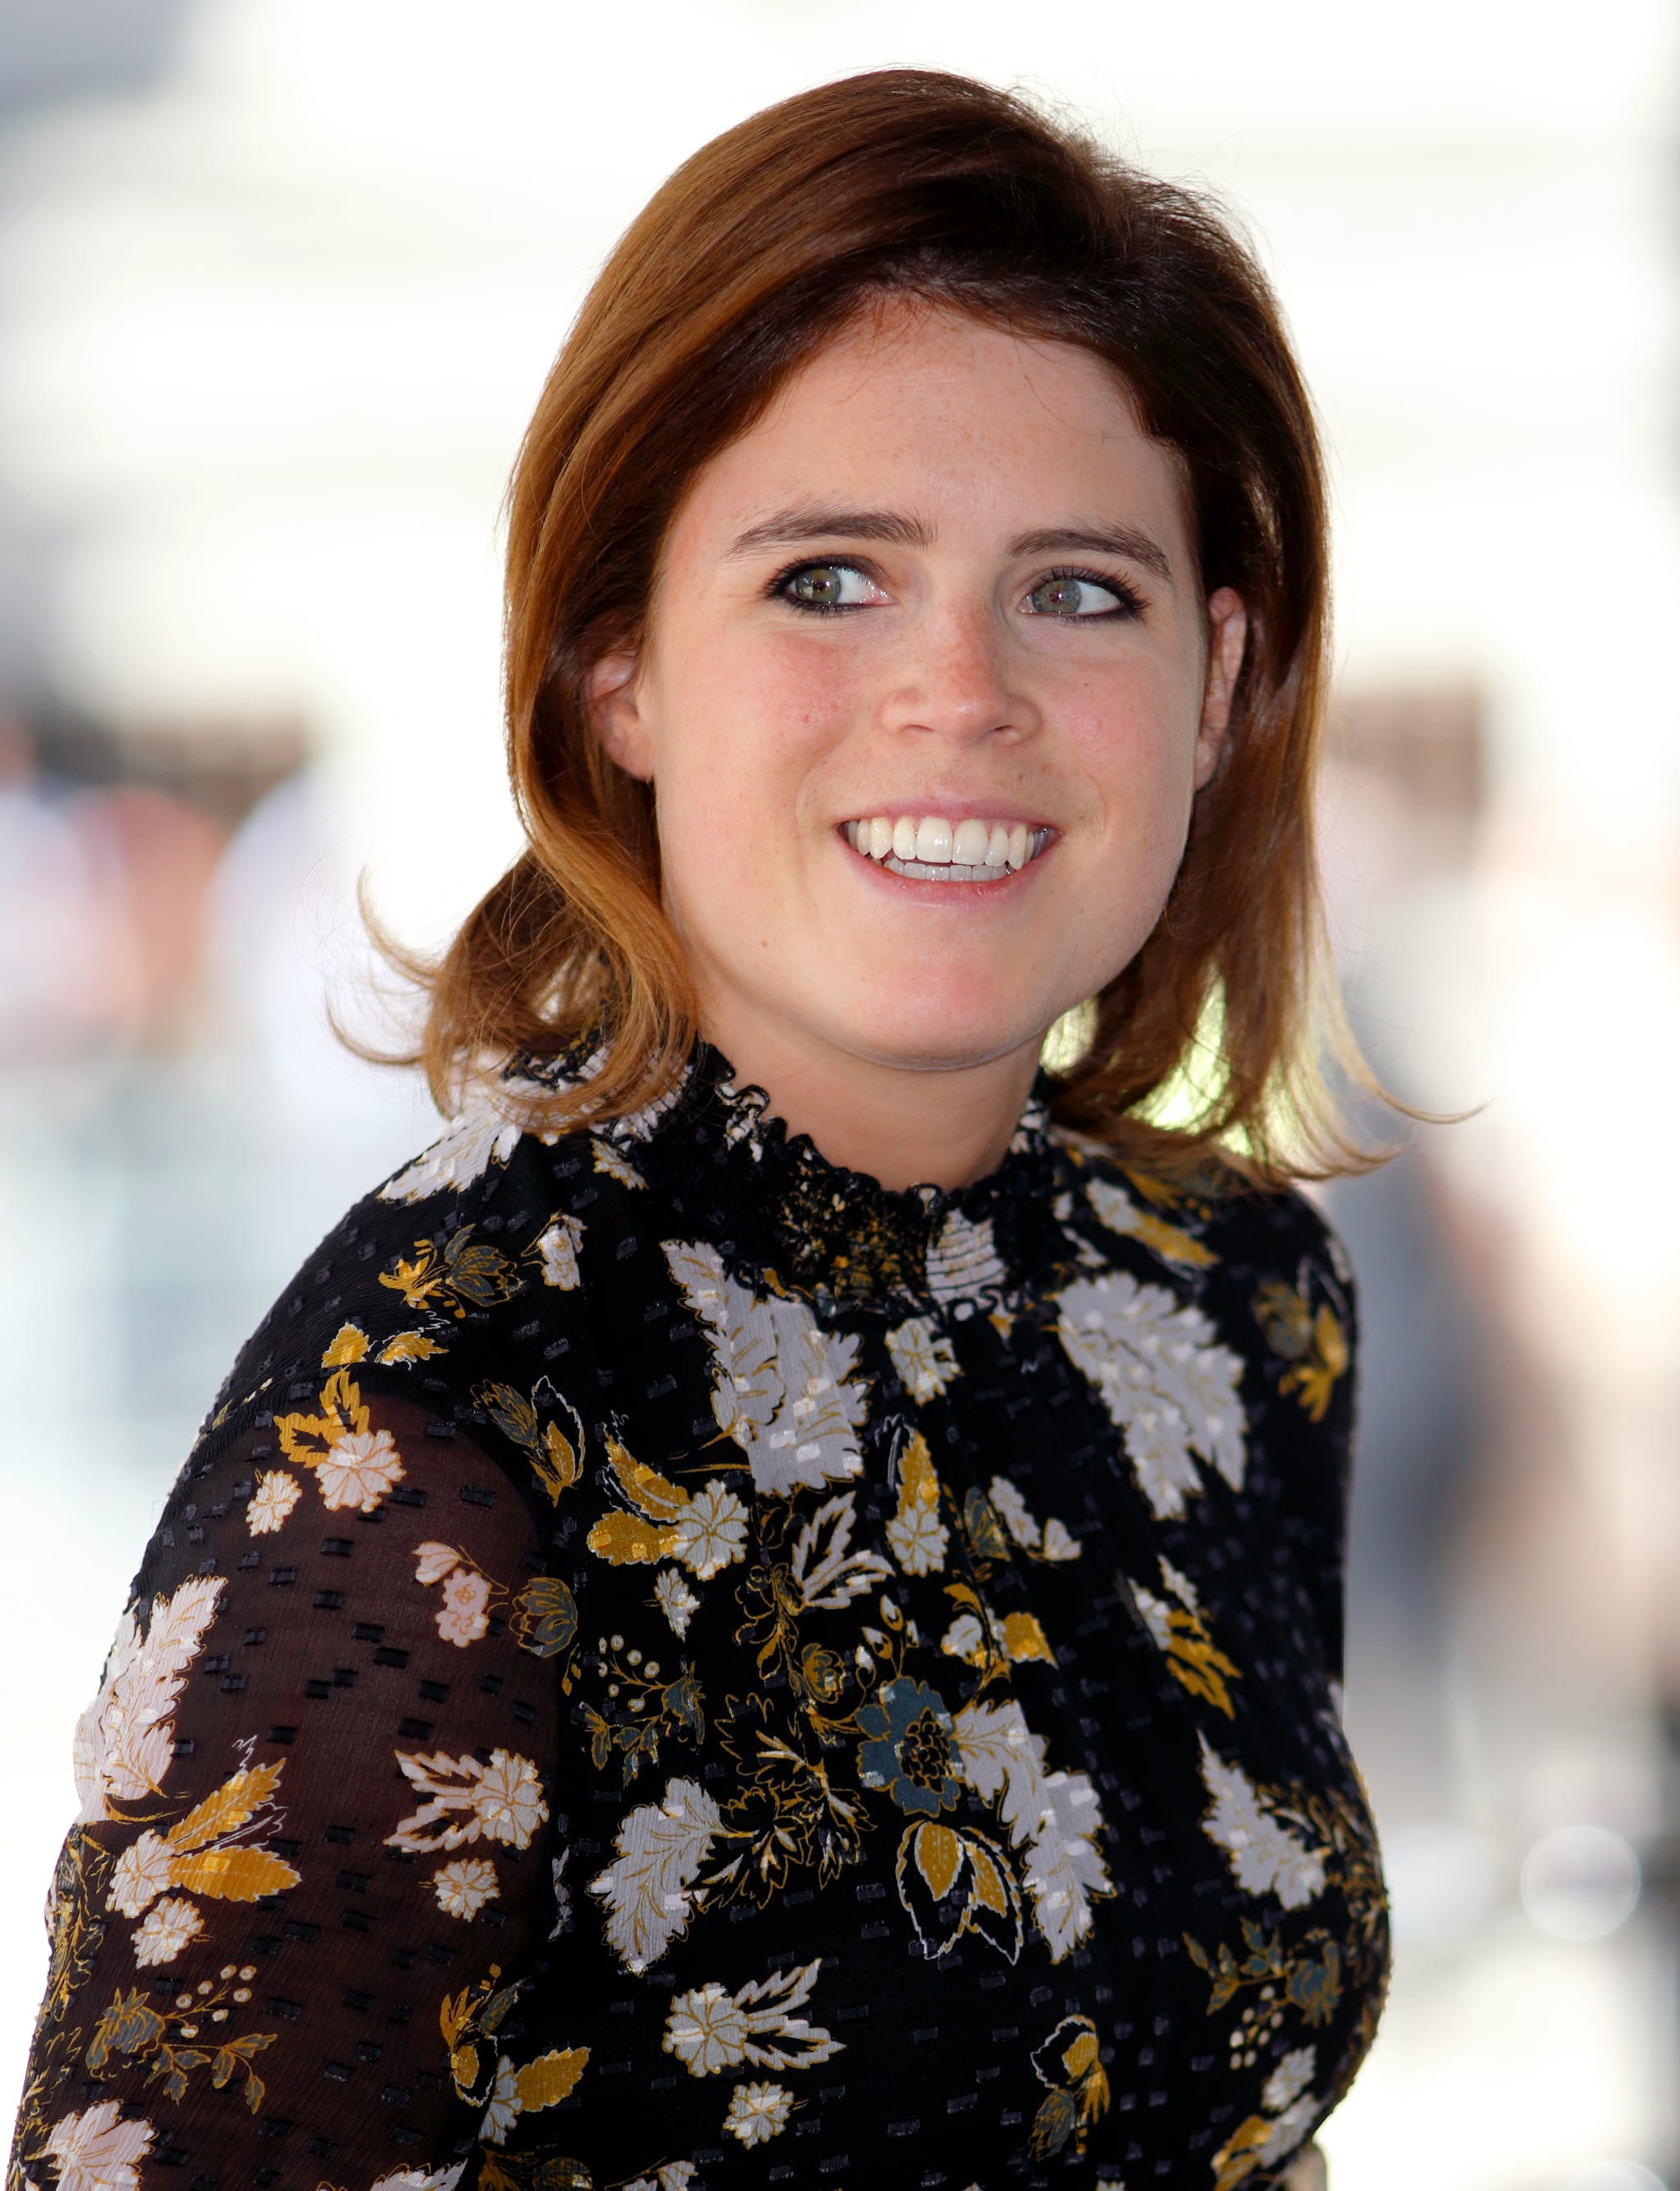 LONDON, UNITED KINGDOM - APRIL 18: (EMBARGOED FOR PUBLICATION IN UK NEWSPAPERS UNTIL 24 HOURS AFTER CREATE DATE AND TIME) Princess Eugenie attends a reception with delegates from the Commonwealth Youth Forum during the Commonwealth Heads of Government Meeting (CHOGM) at the Queen Elizabeth II Conference Centre on April 18, 2018 in London, England. (Photo by Max Mumby/Indigo/Getty Images)